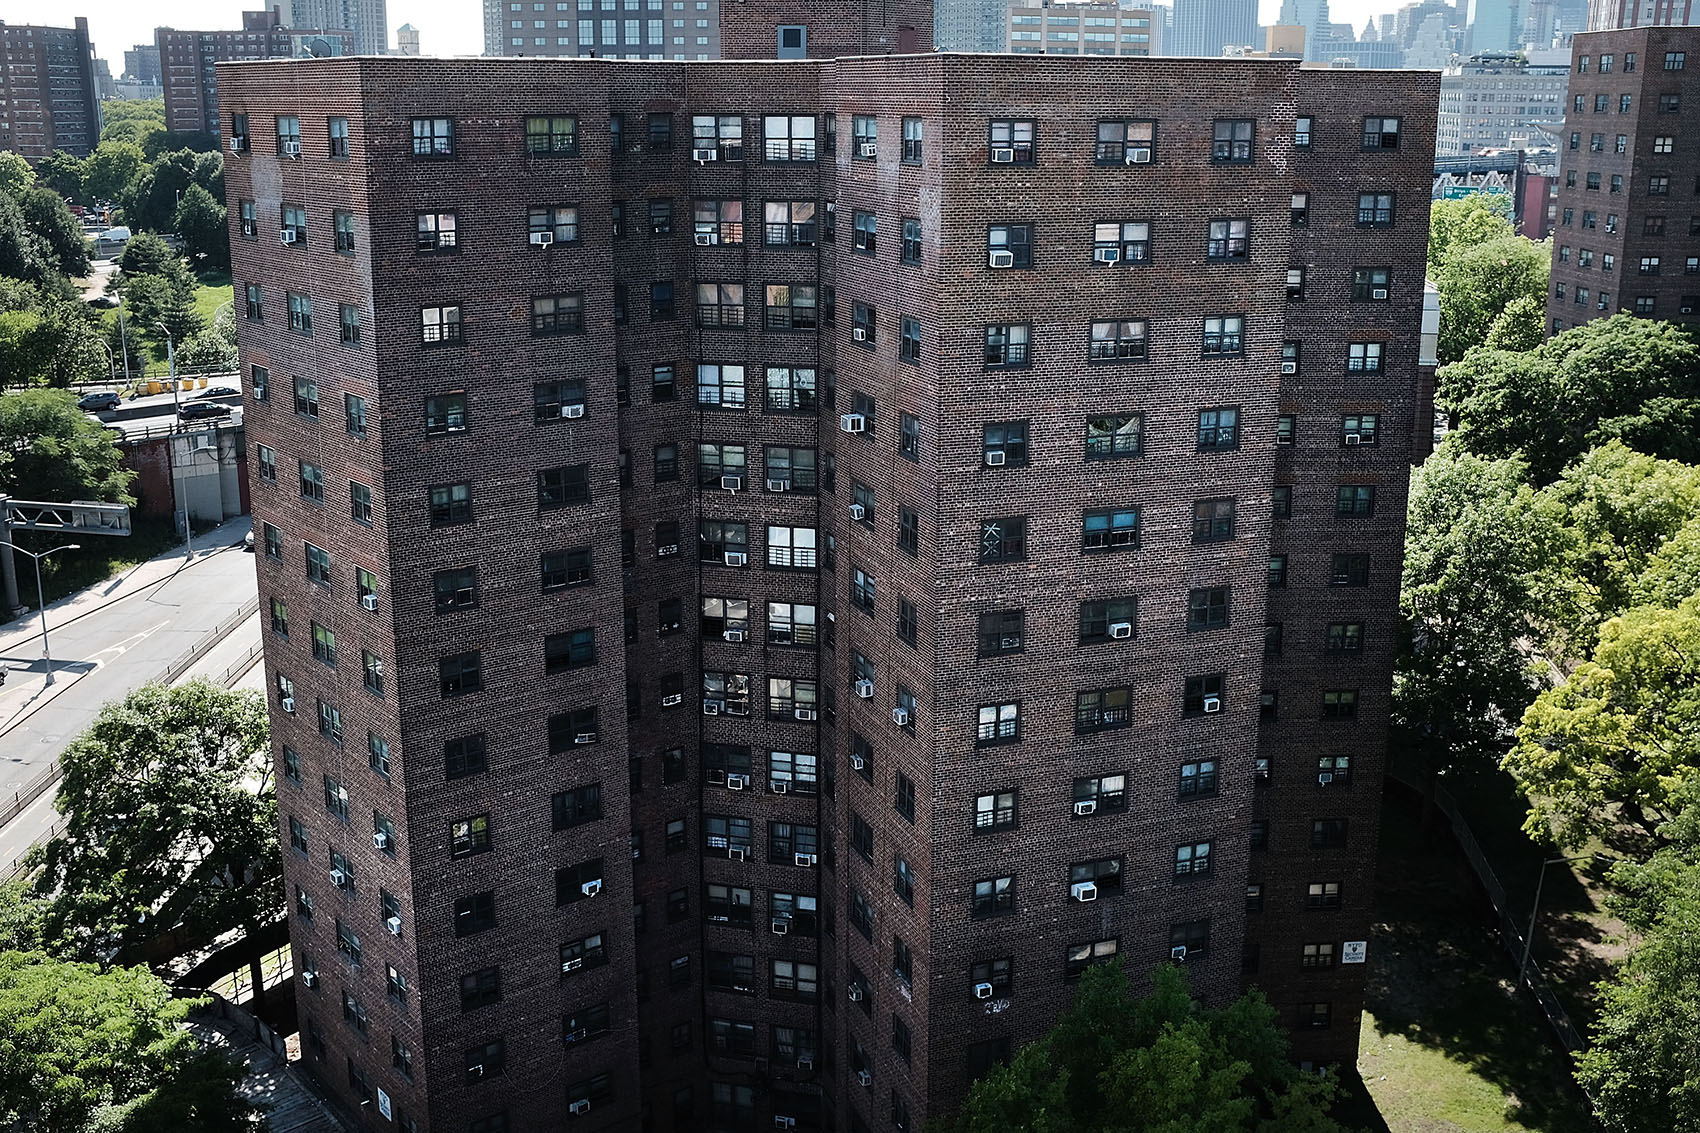 Public housing stands in Brooklyn on June 11, 2018 in New York City. (Spencer Platt/Getty Images)